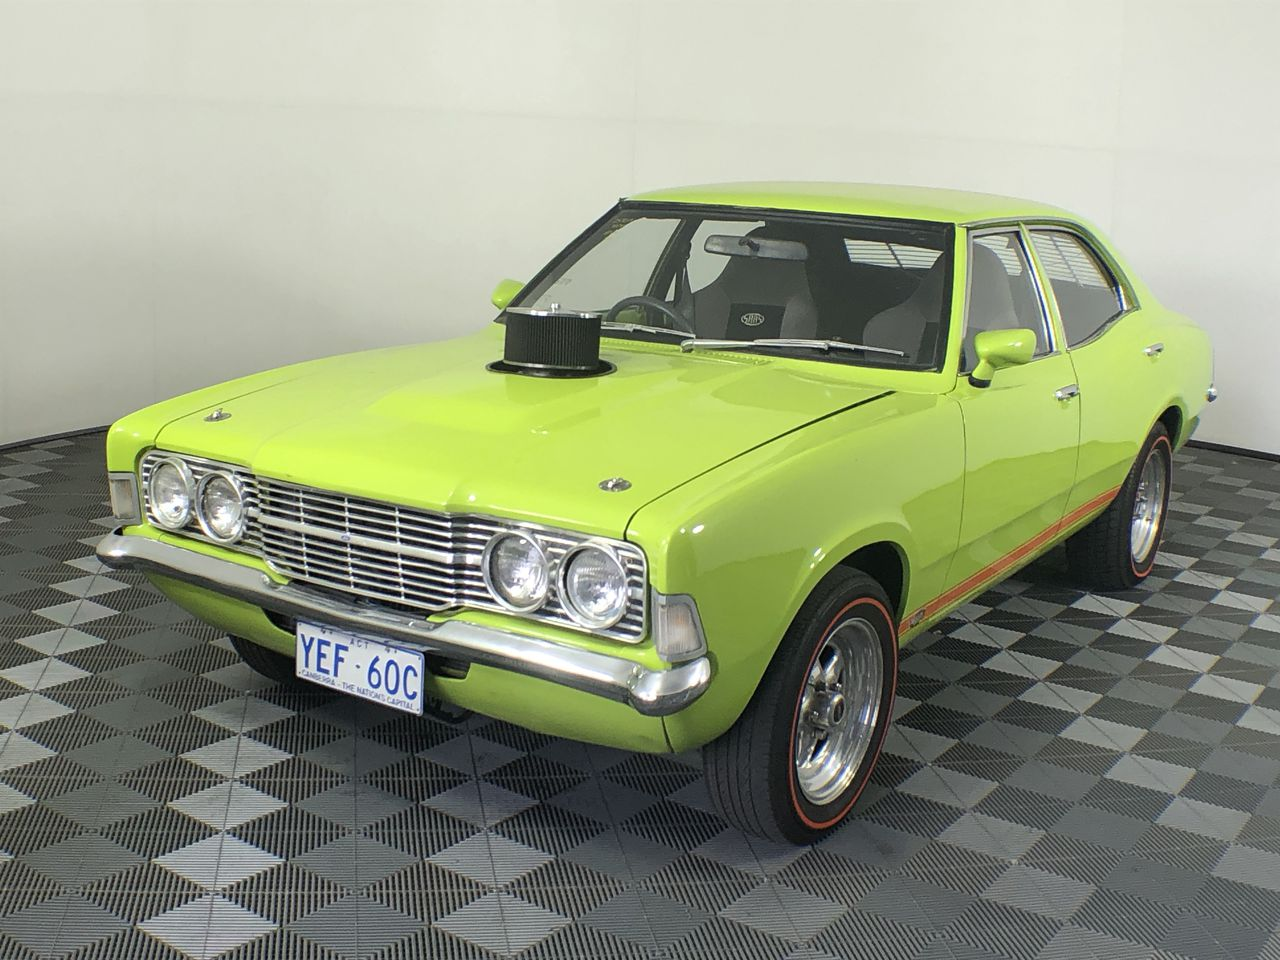 Ford Cortina TC, 376 Stroker Cleveland Motor, Engineered